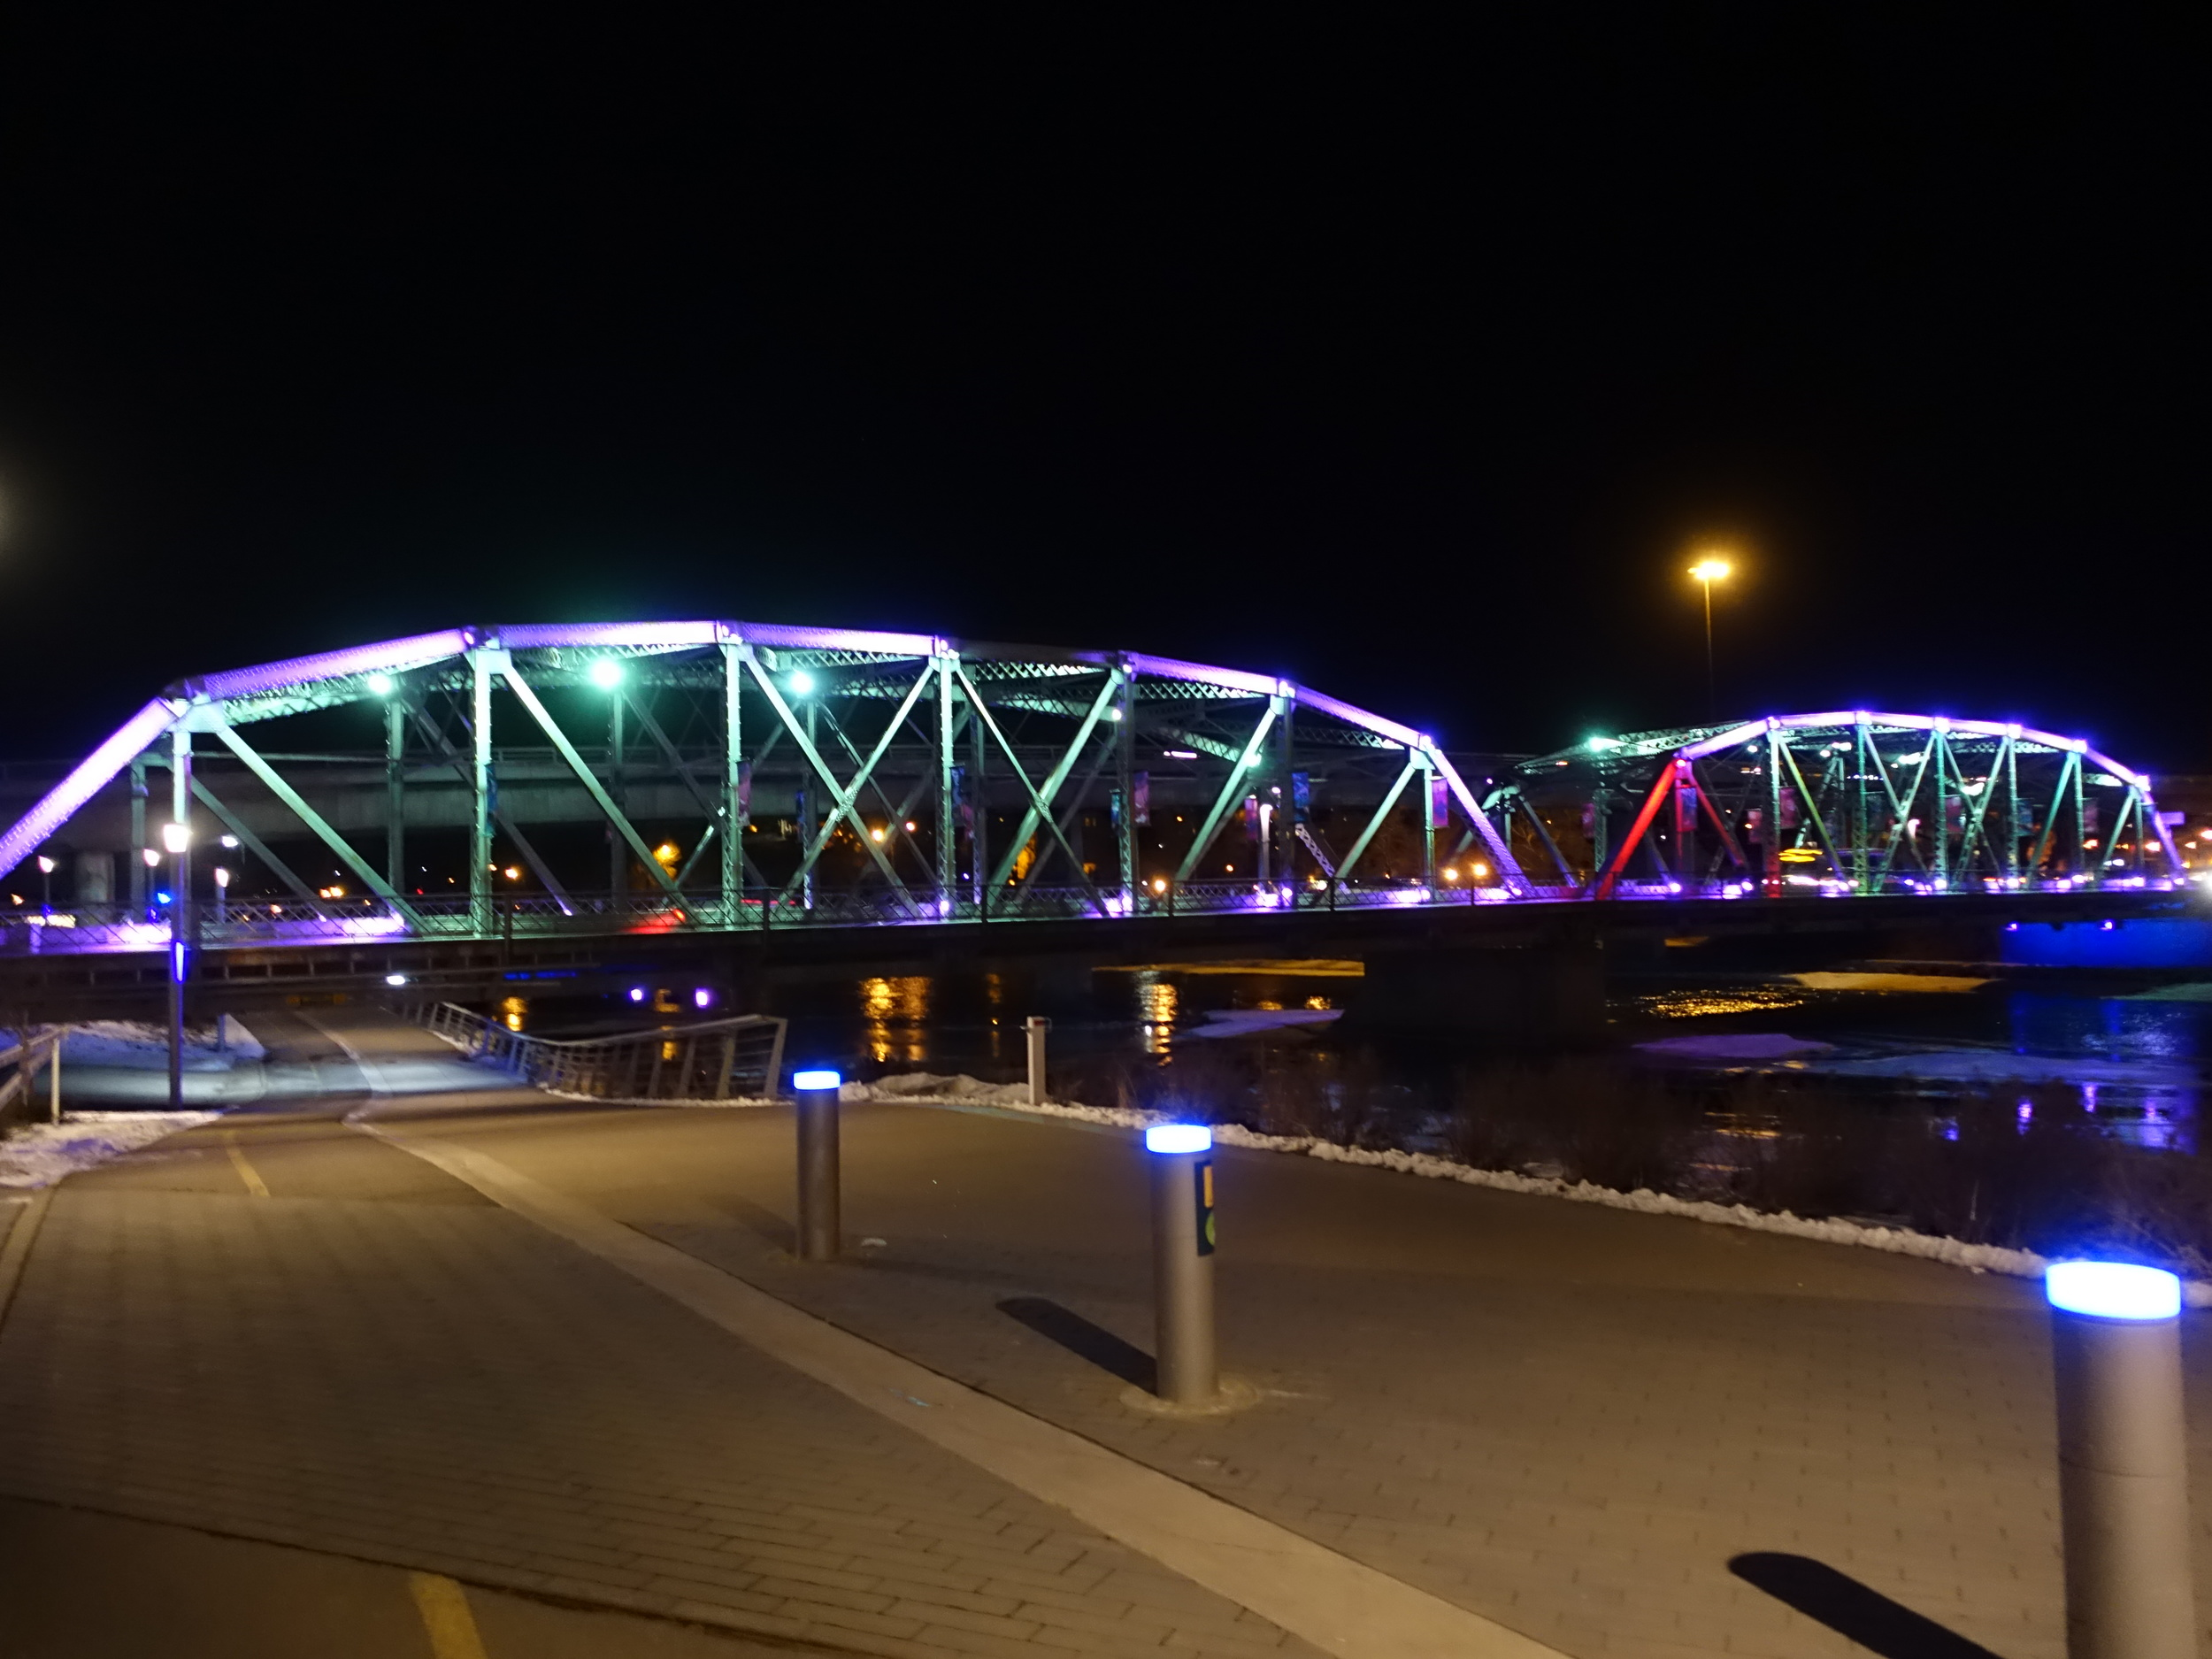 Langevin Bridge lights add colour at night to a dull grey bridge by day.